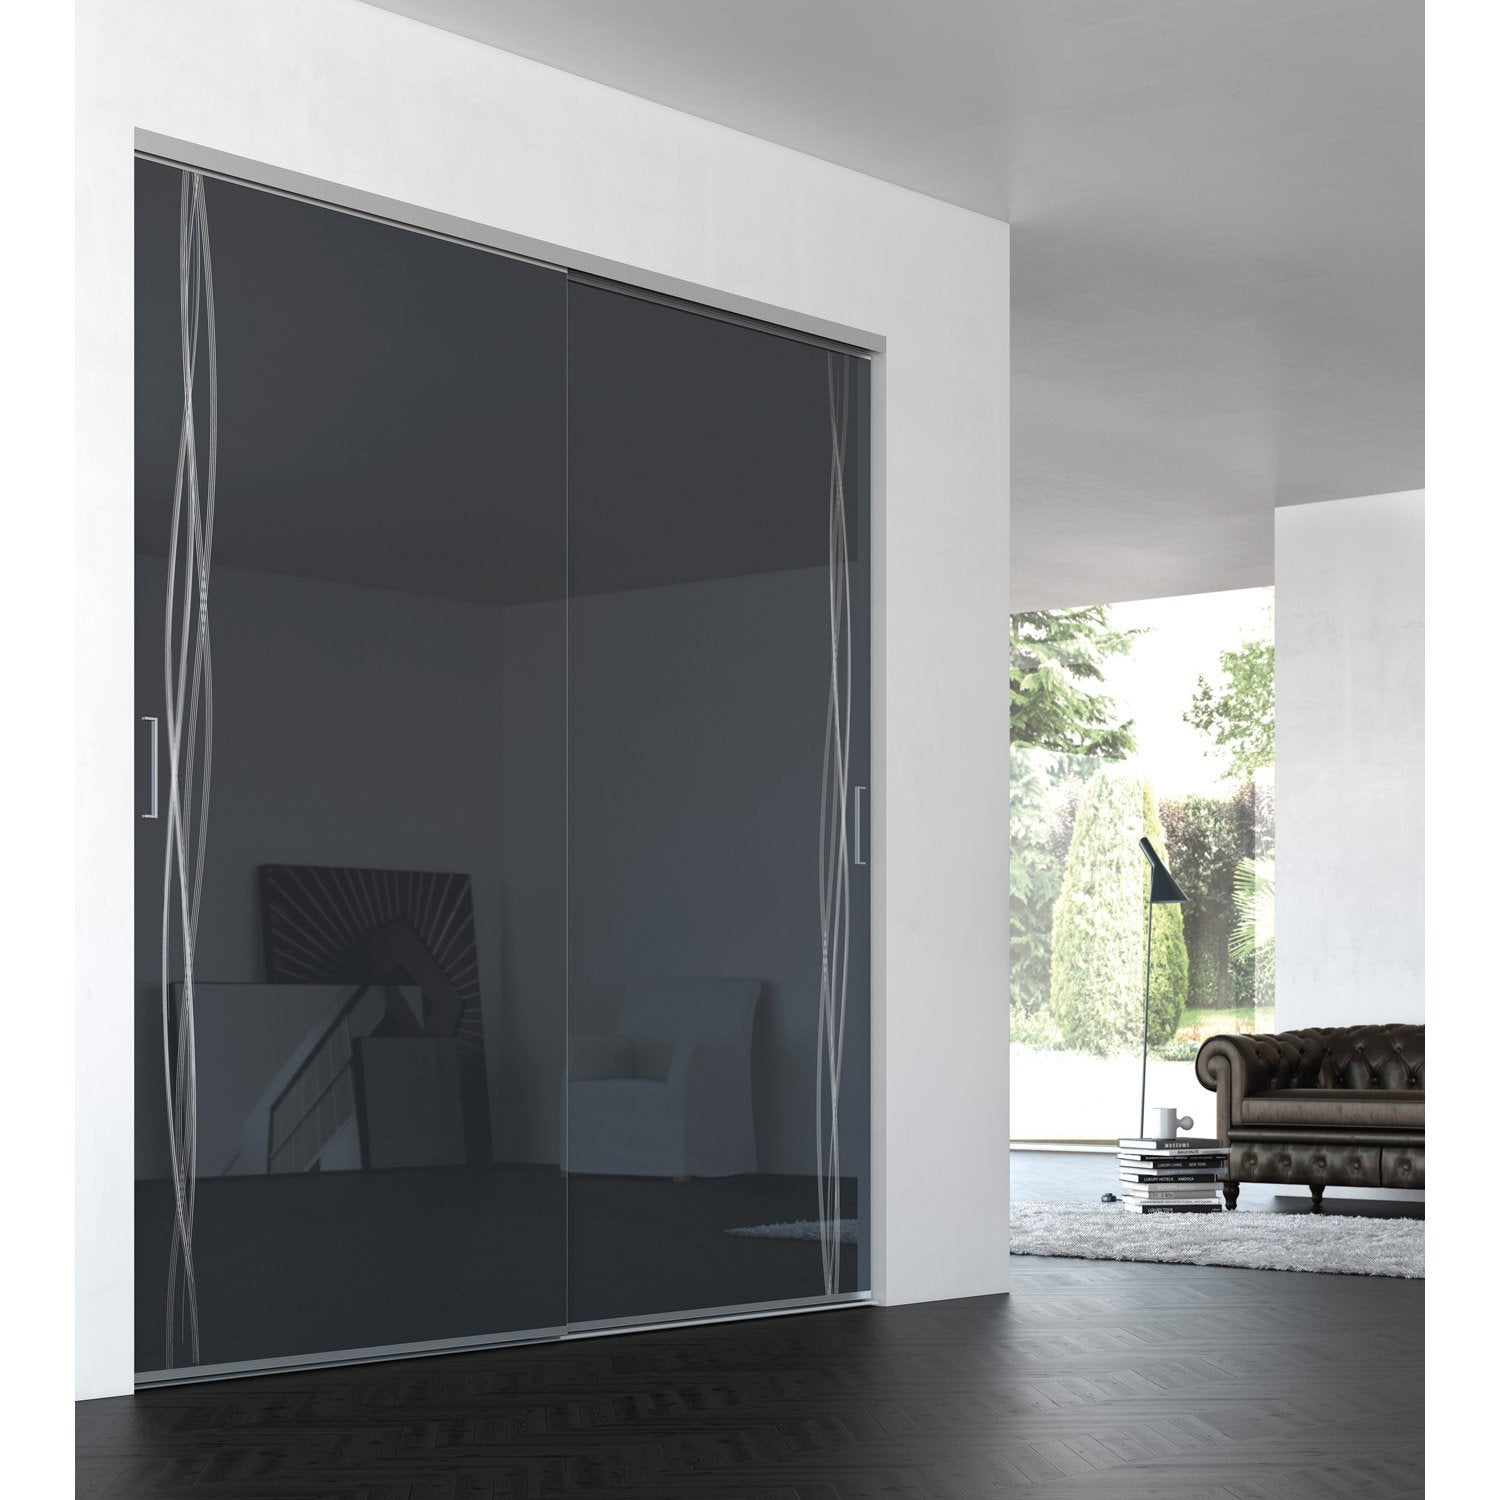 Porte de placard coulissante sur mesure iliko grand large for Porte coulissante 120 cm